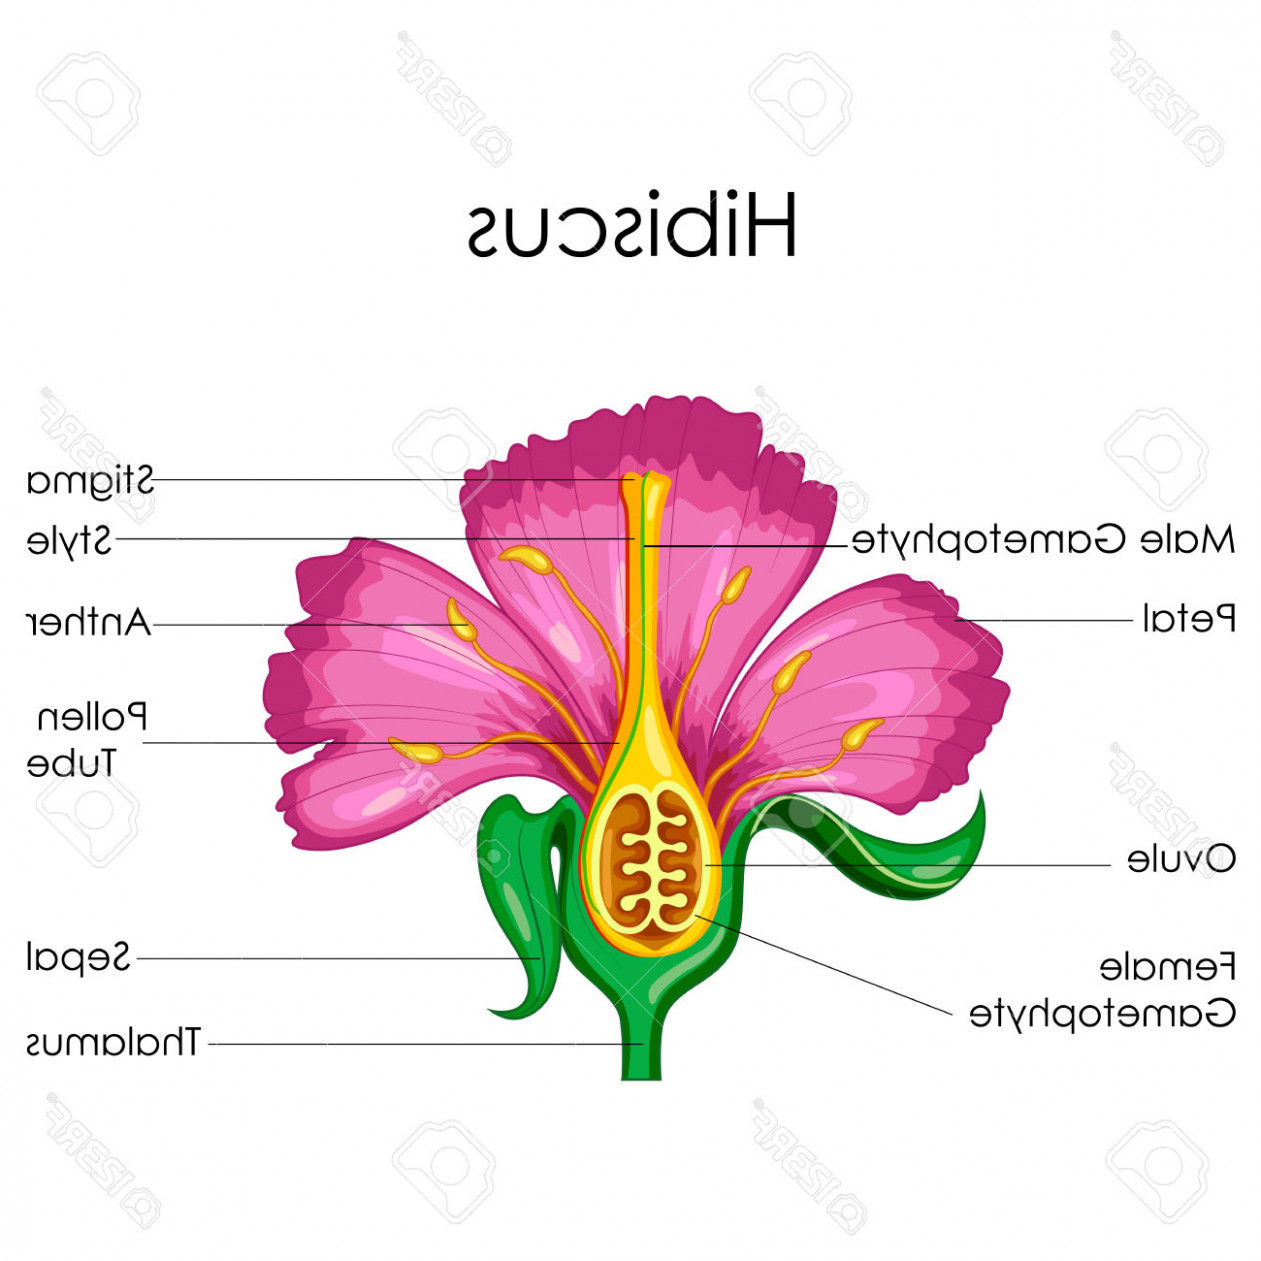 Parts Of A Flower Diagram The Gallery For Hibiscus Flower Diagram Anatomy Flower